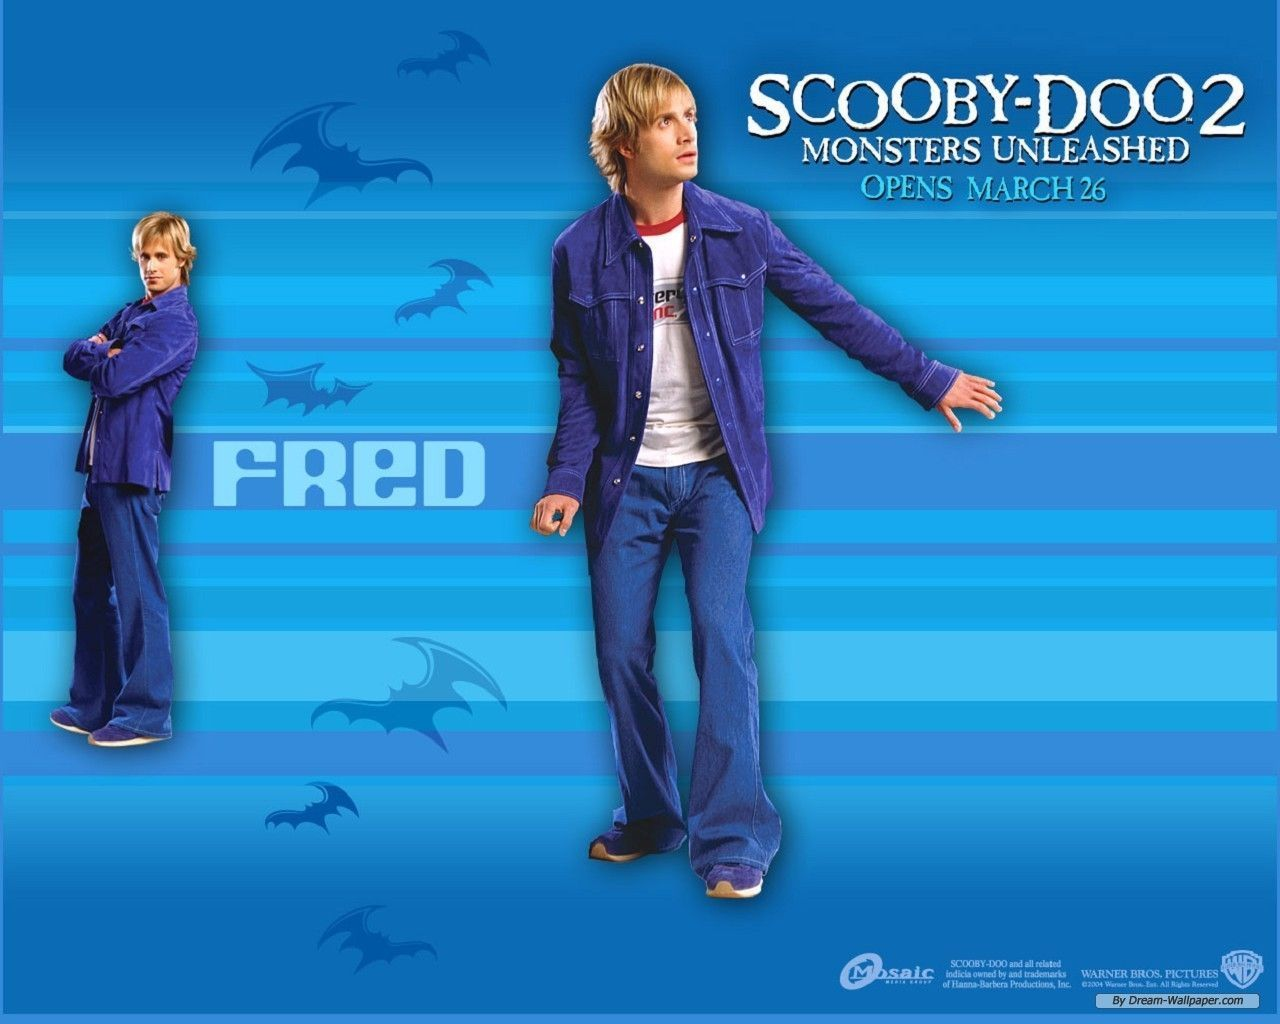 Free Wallpaper Free Movie Wallpaper Scoo Doo 2 Inside The Brilliant Scooby Doo Monsters Unleashed Wallp In 2020 Scooby Doo Movie Scooby Doo Mystery Inc Fred Scooby Doo